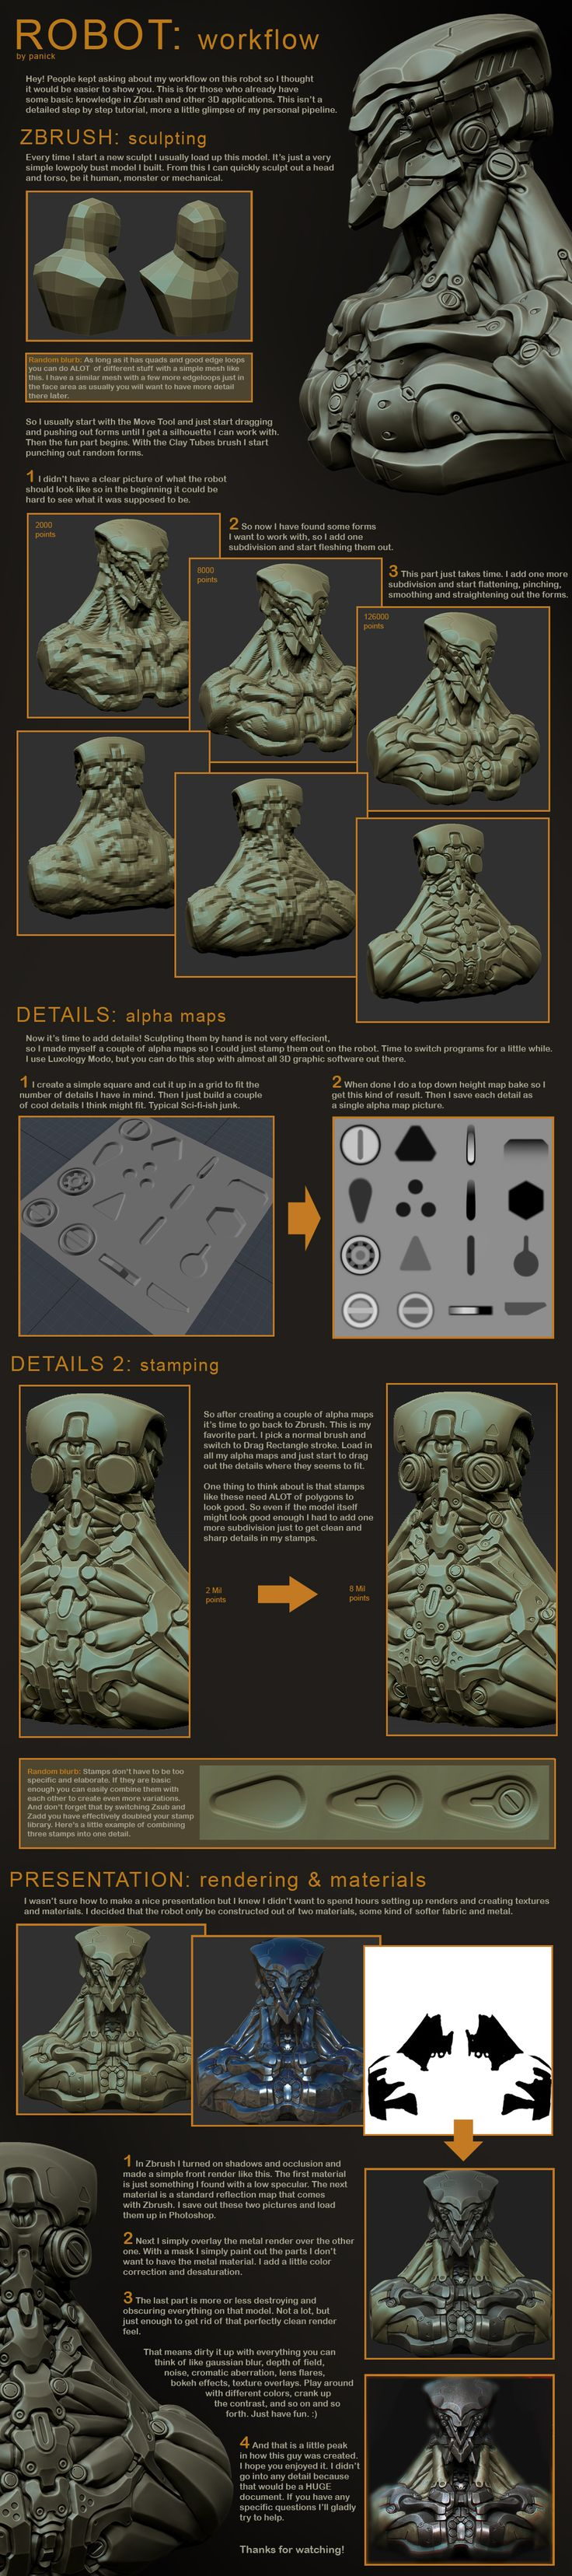 Robot Workflow by panick.deviantart.com on @deviantART